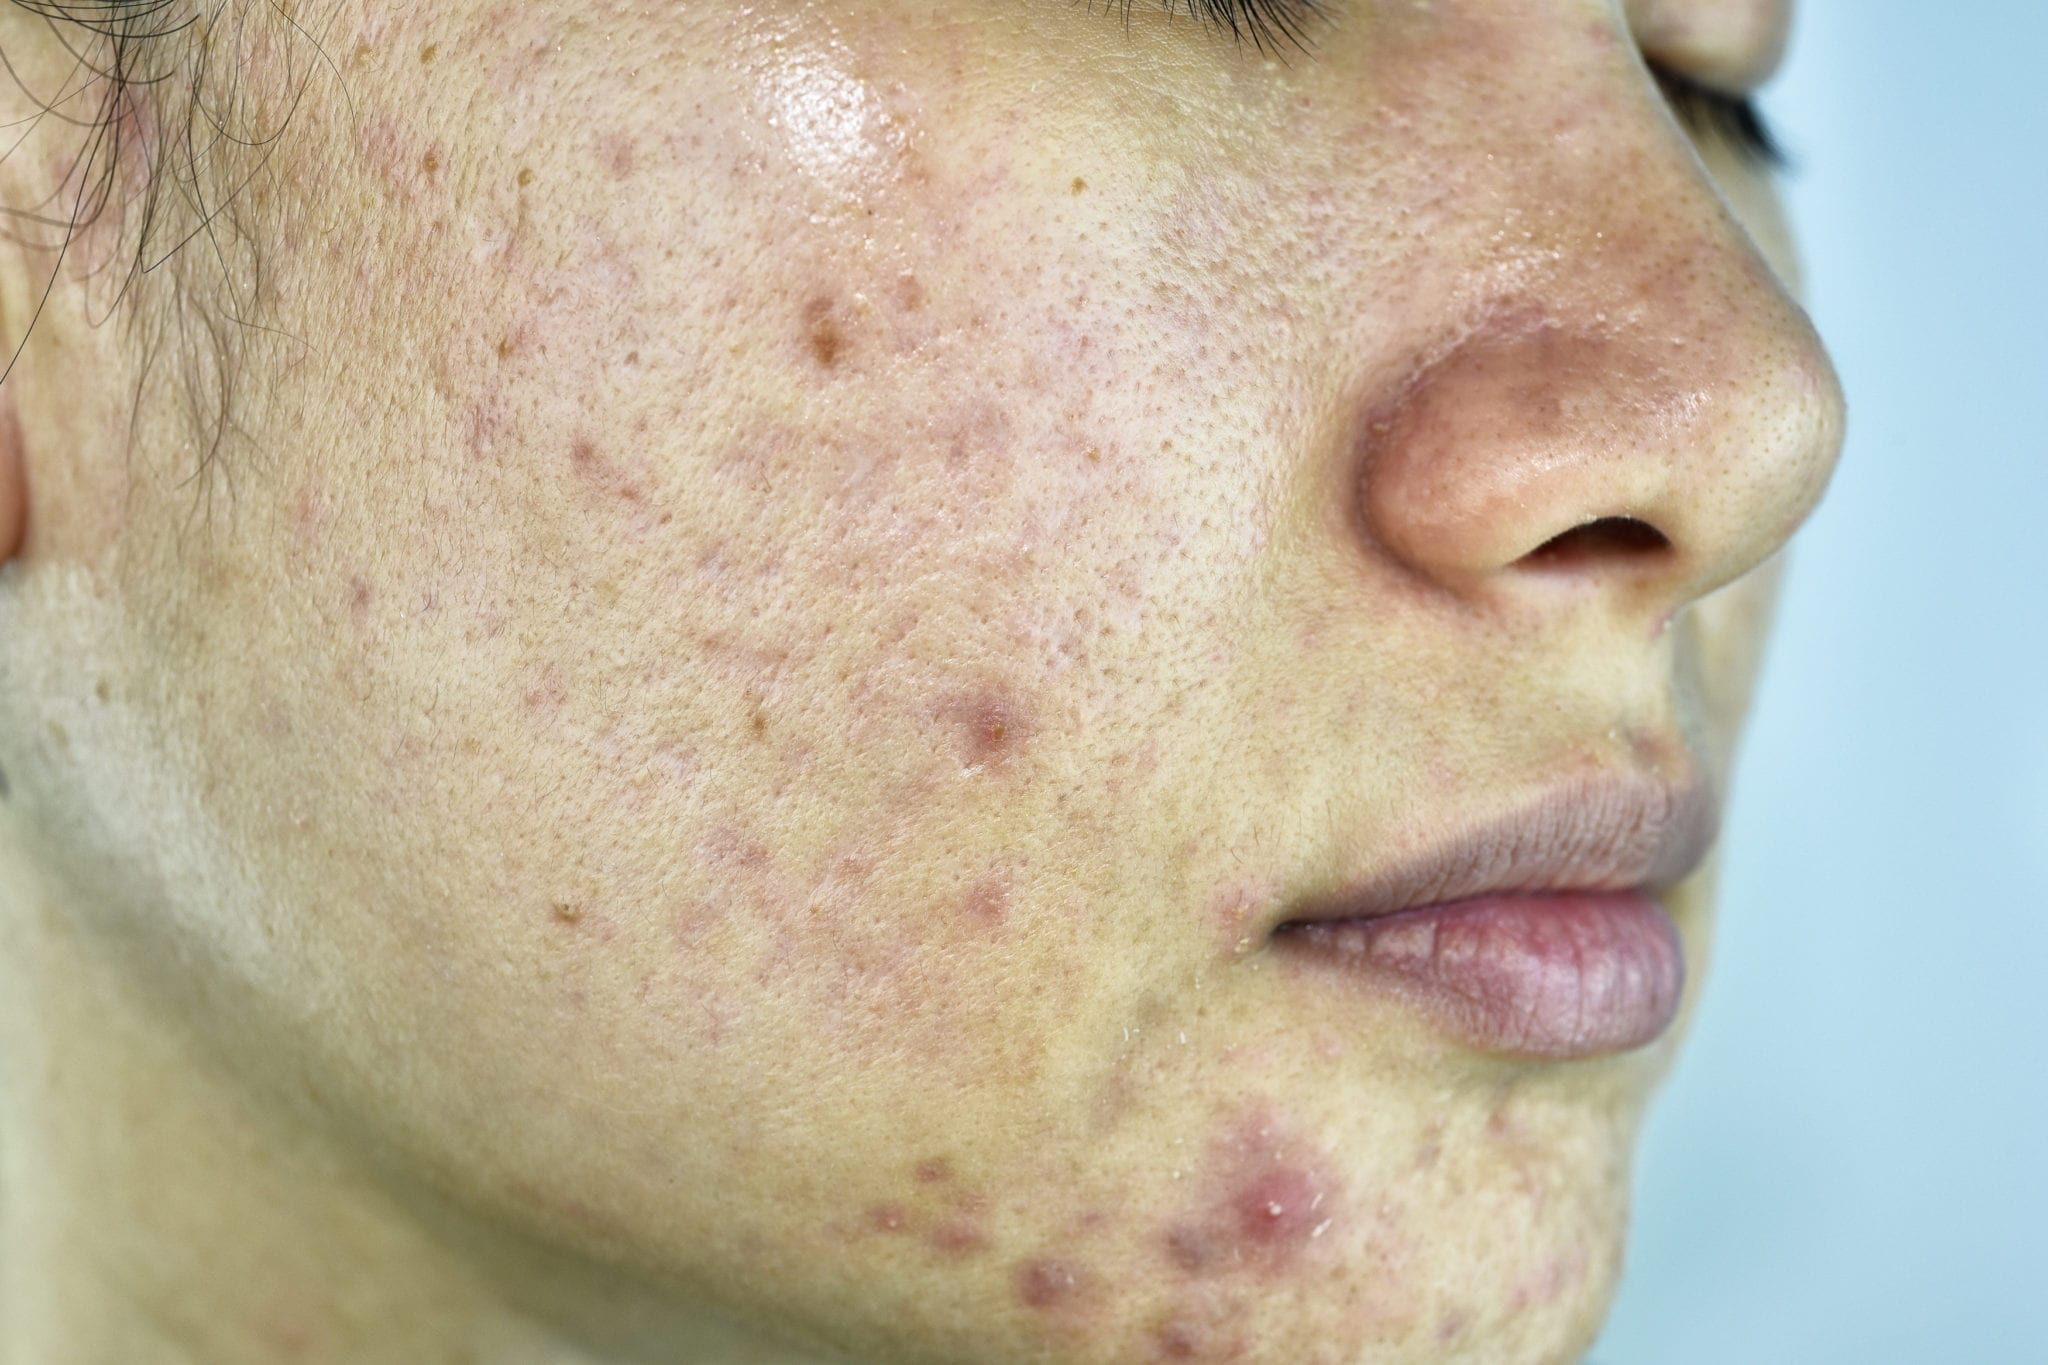 Oily skin type with acne